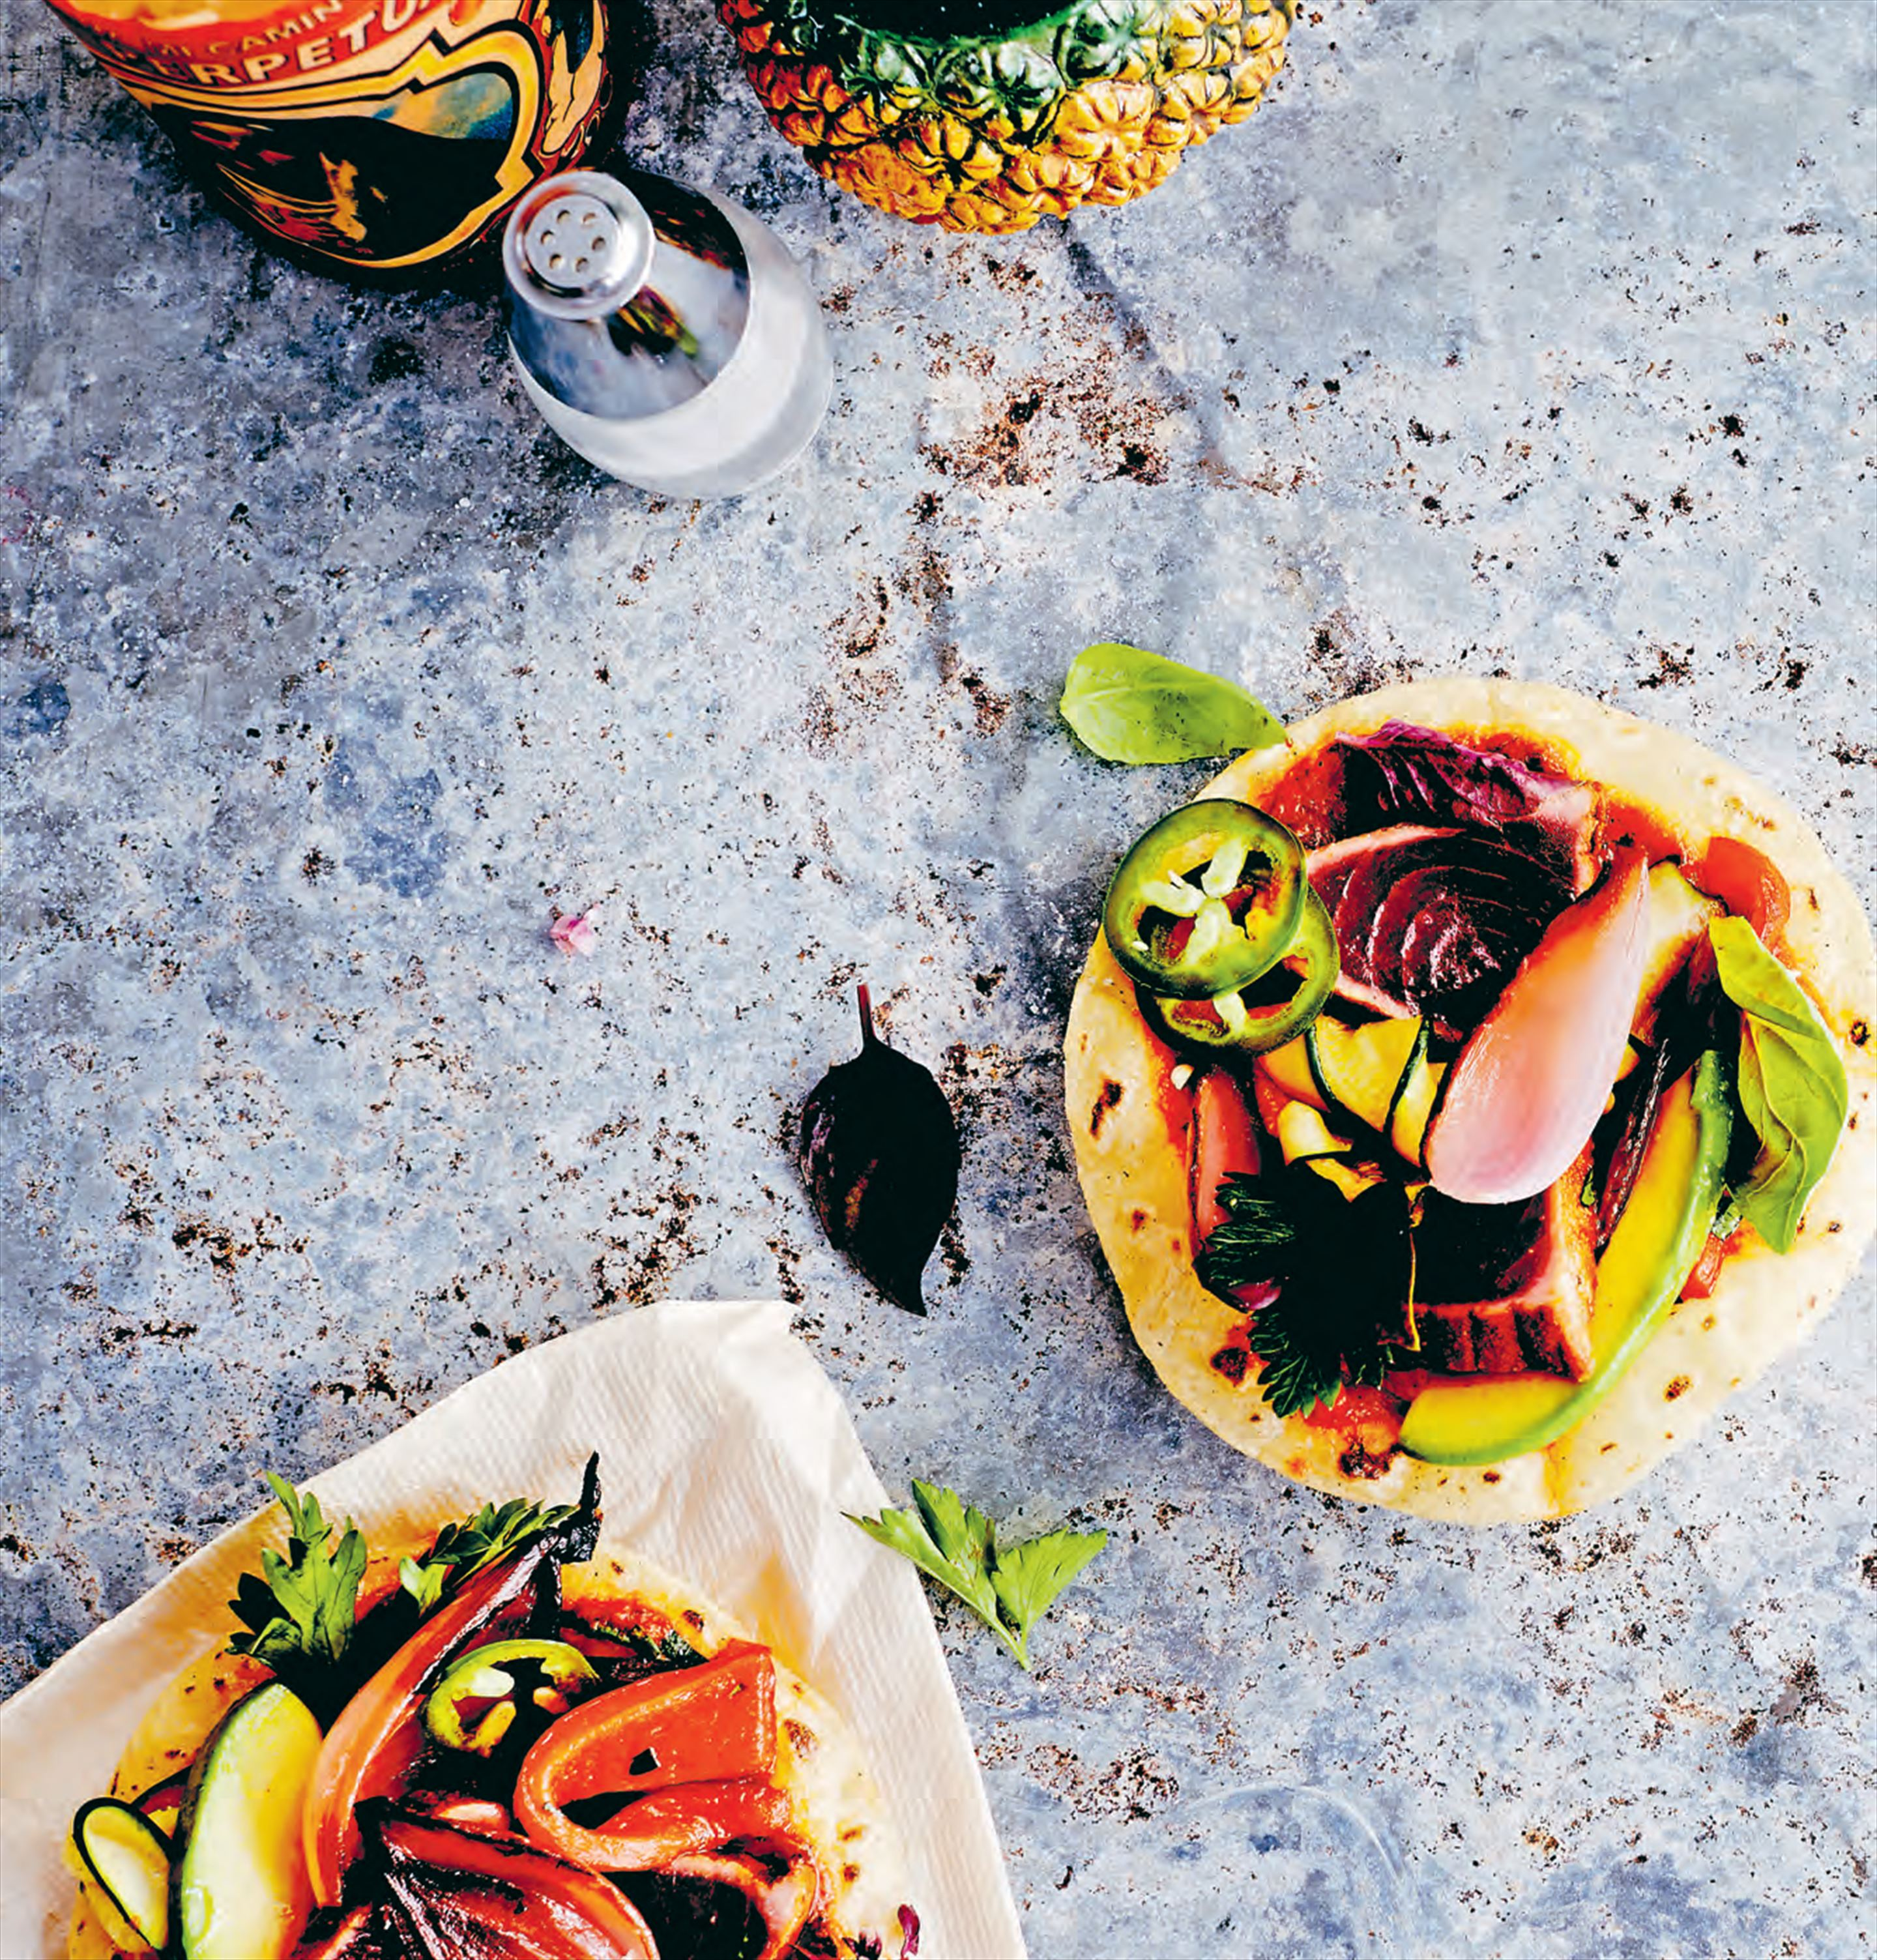 Street-style tostadas with seared tuna & wood-grilled veg